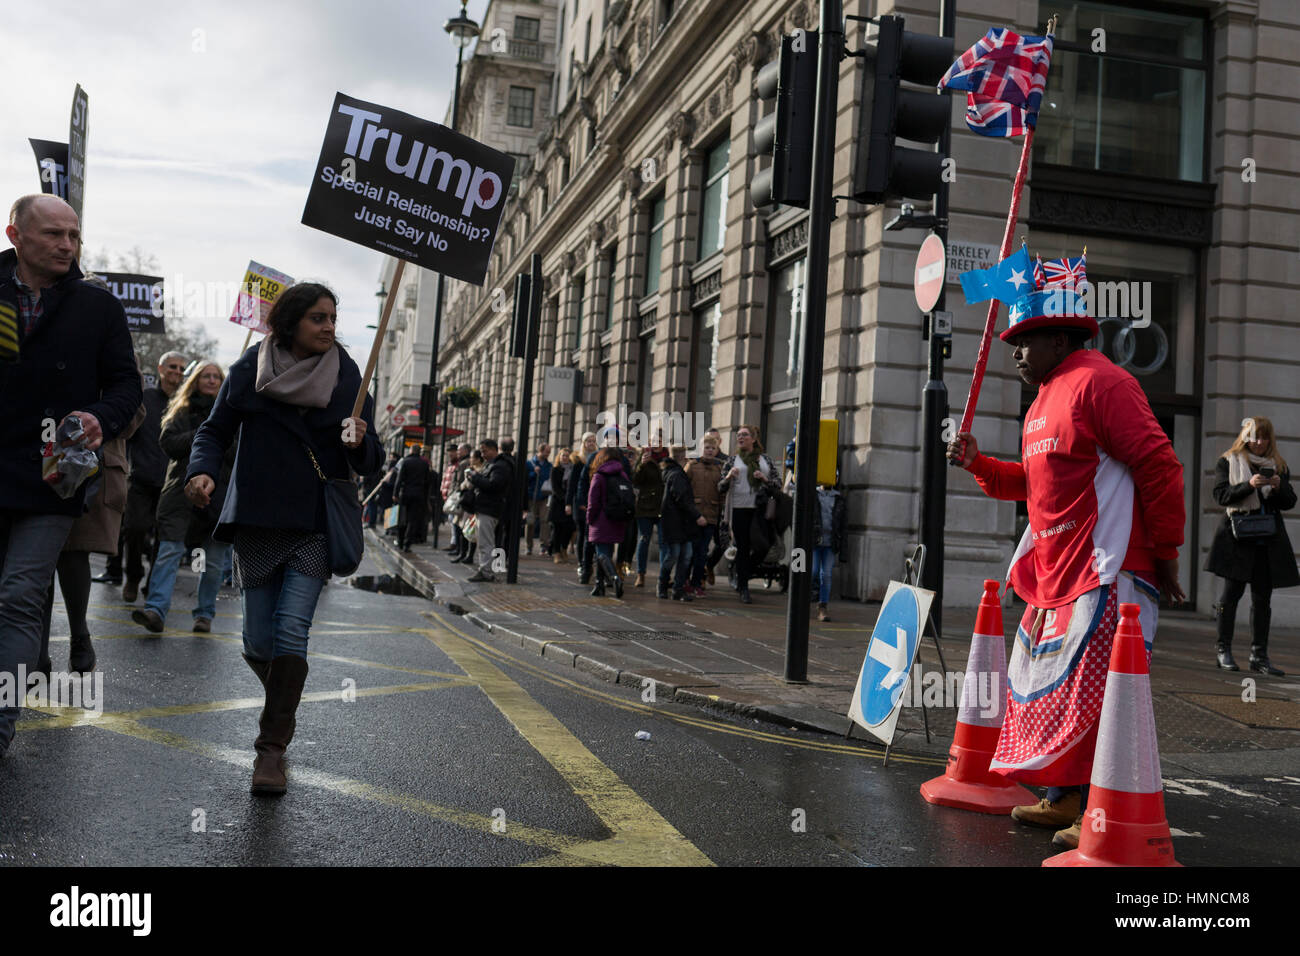 Stop Trump's Muslim ban demonstration on 4th February 2017 in London, United Kingdom. The protest was called on - Stock Image